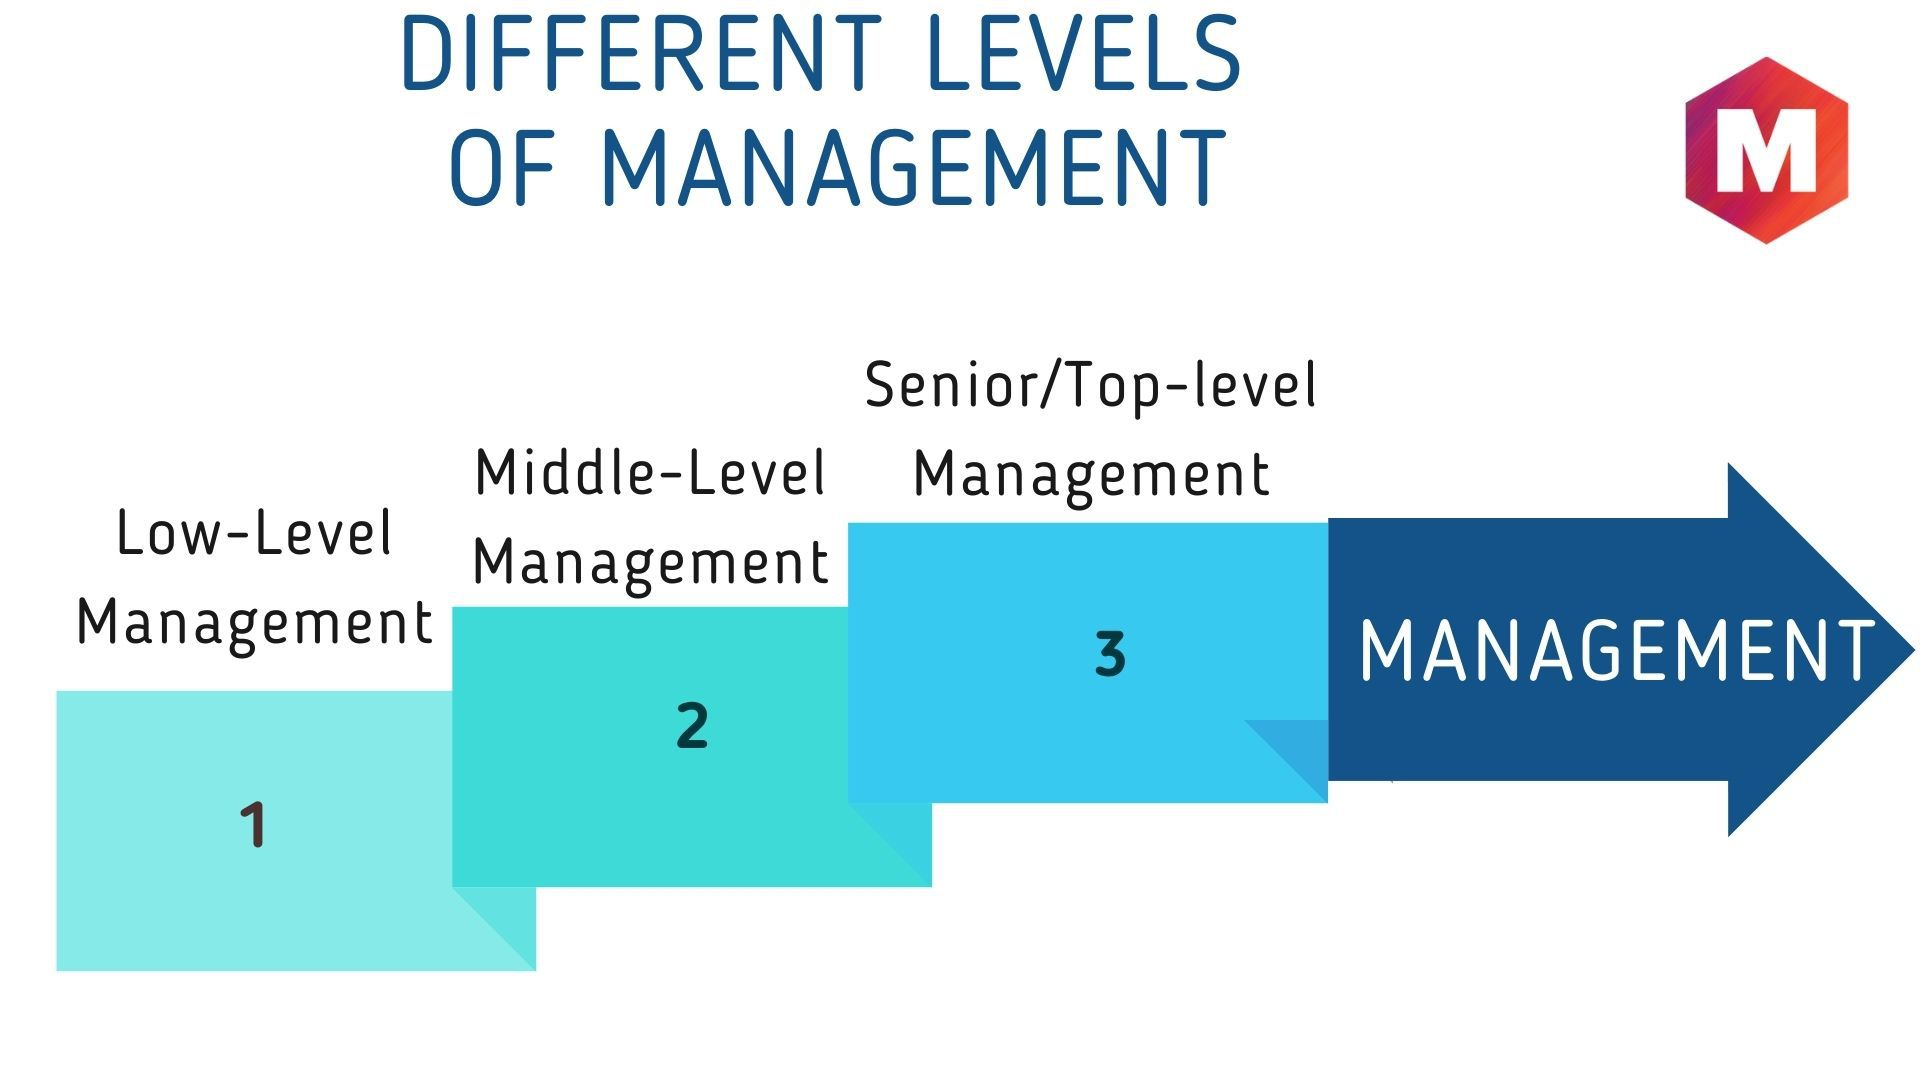 What are the different levels of Management